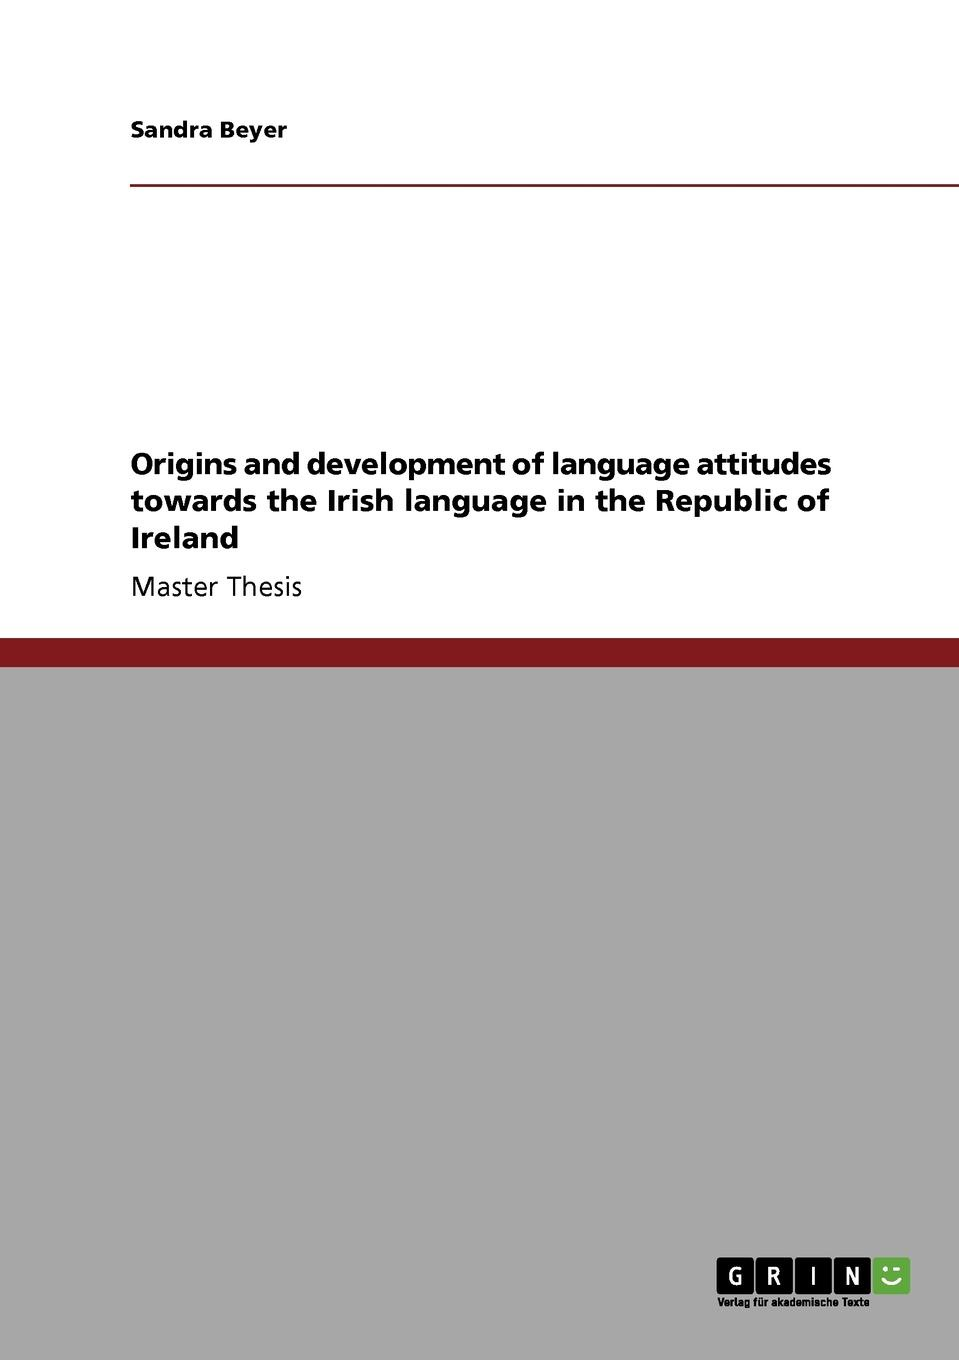 Sandra Beyer Origins and development of language attitudes towards the Irish language in the Republic of Ireland the comparative typology of spanish and english texts story and anecdotes for reading translating and retelling in spanish and english adapted by © linguistic rescue method level a1 a2